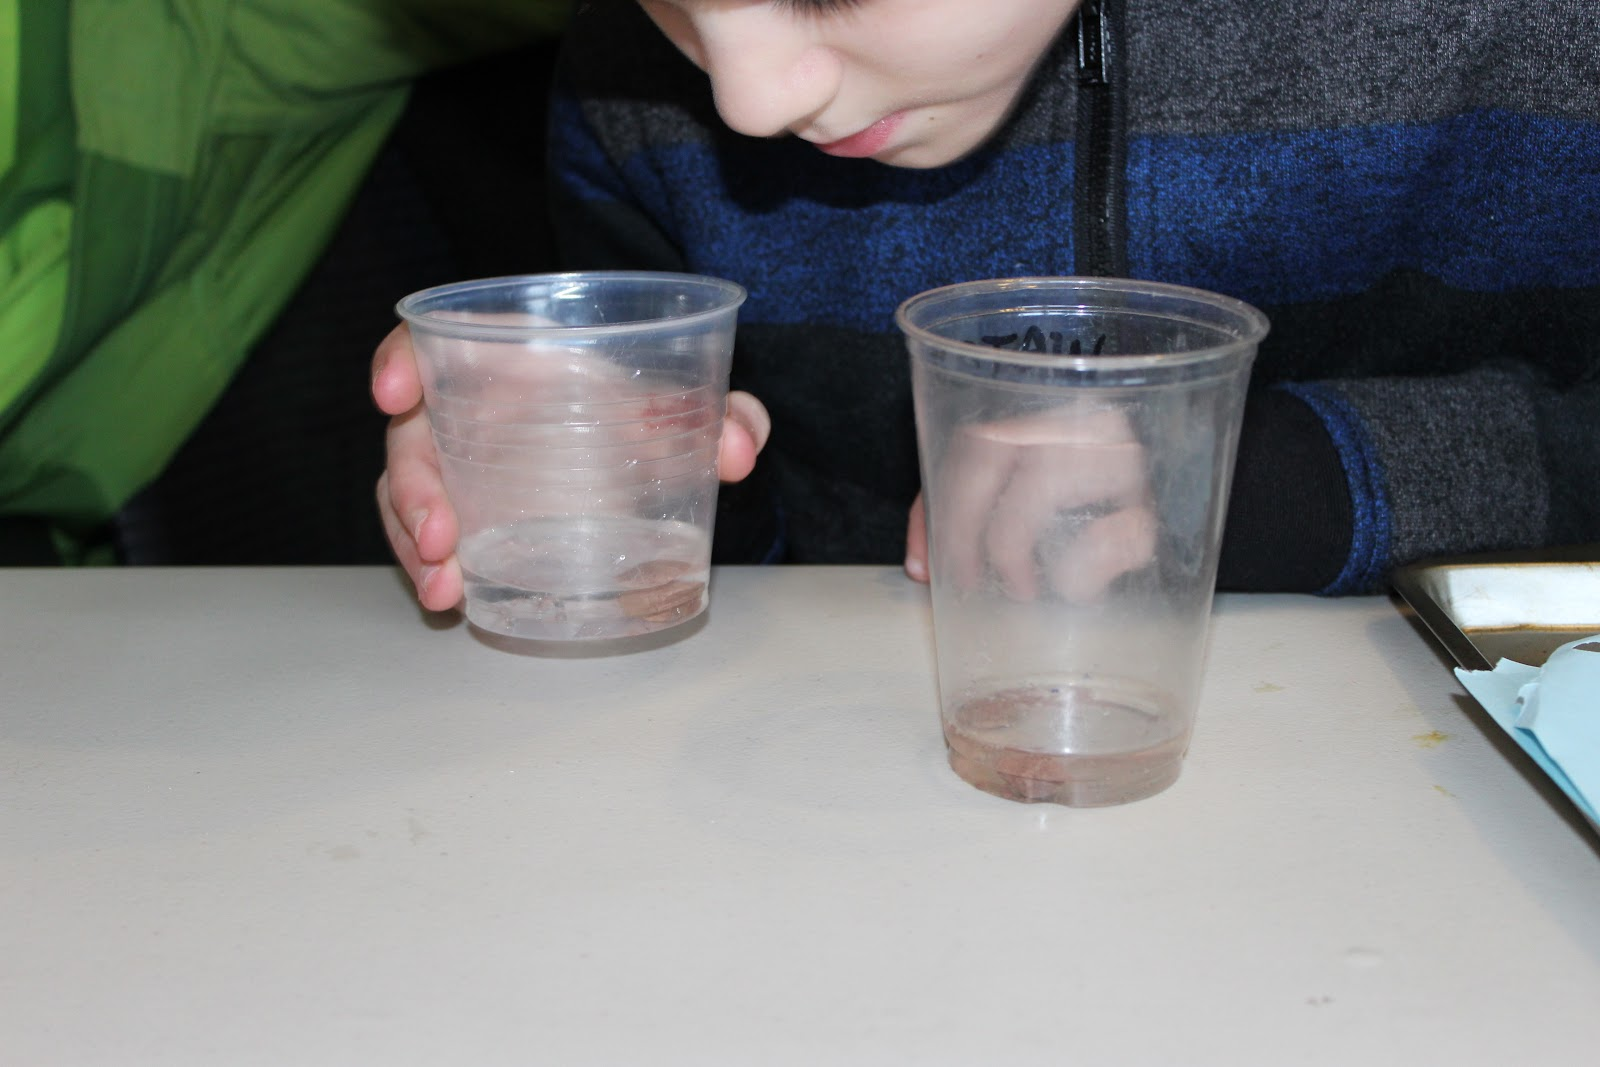 Observing chemical weathering changes during a lab